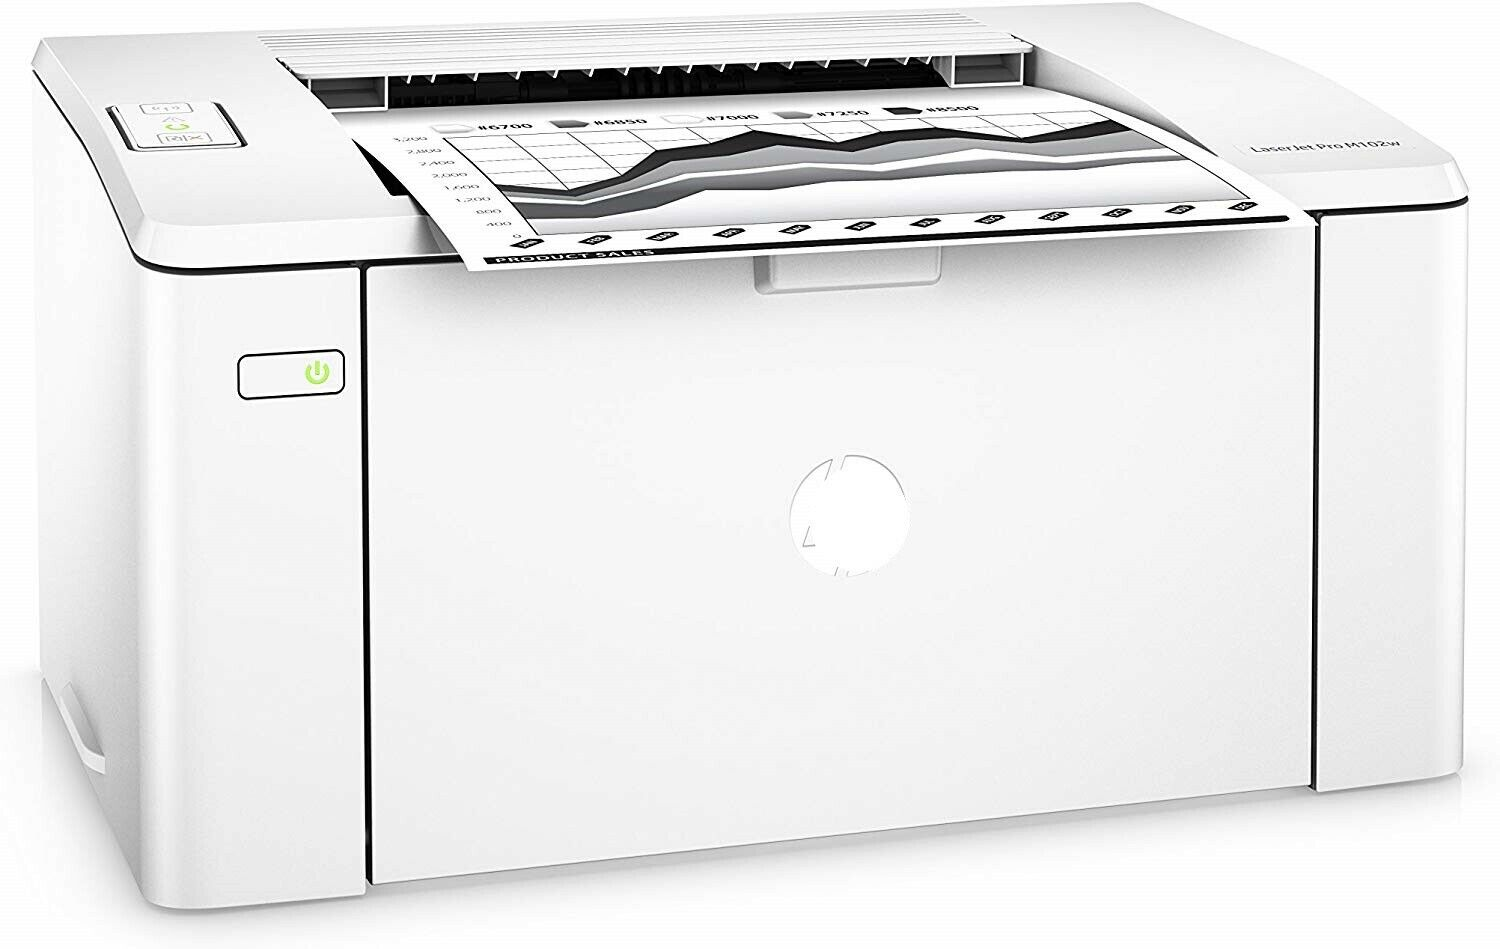 NEW HP LaserJet Pro M102w Wireless Laser Printer, G3Q35A#BGJ